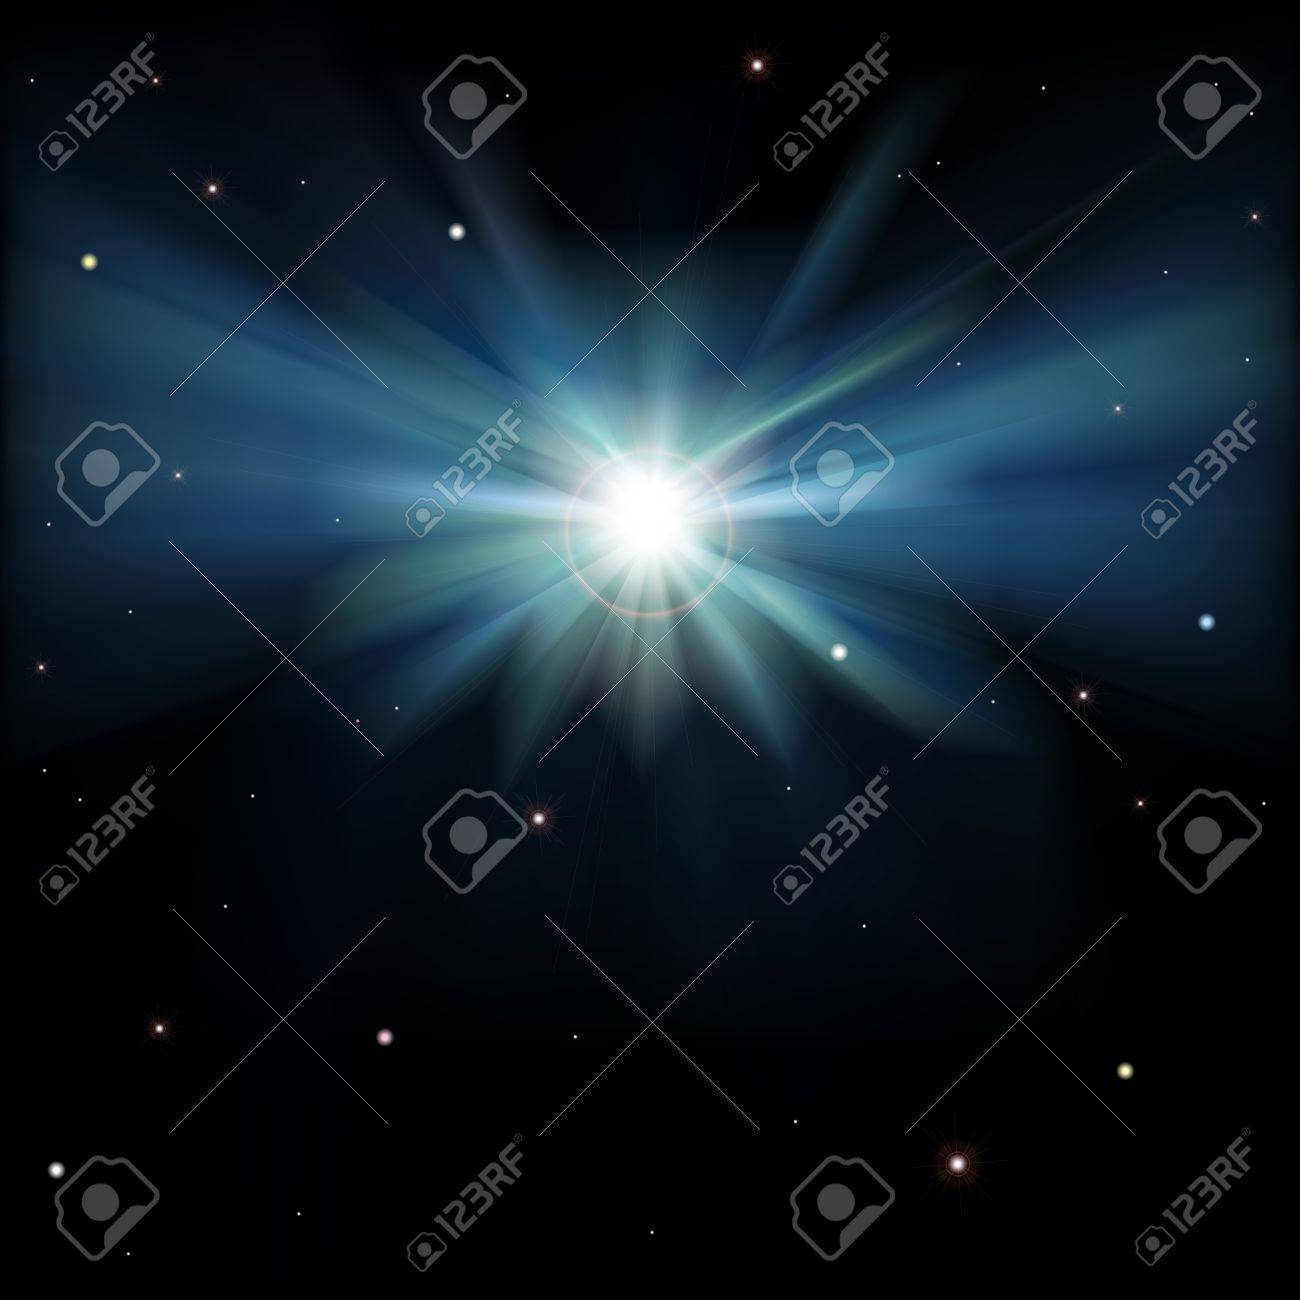 abstract space background with stars on black Stock Vector - 19254325